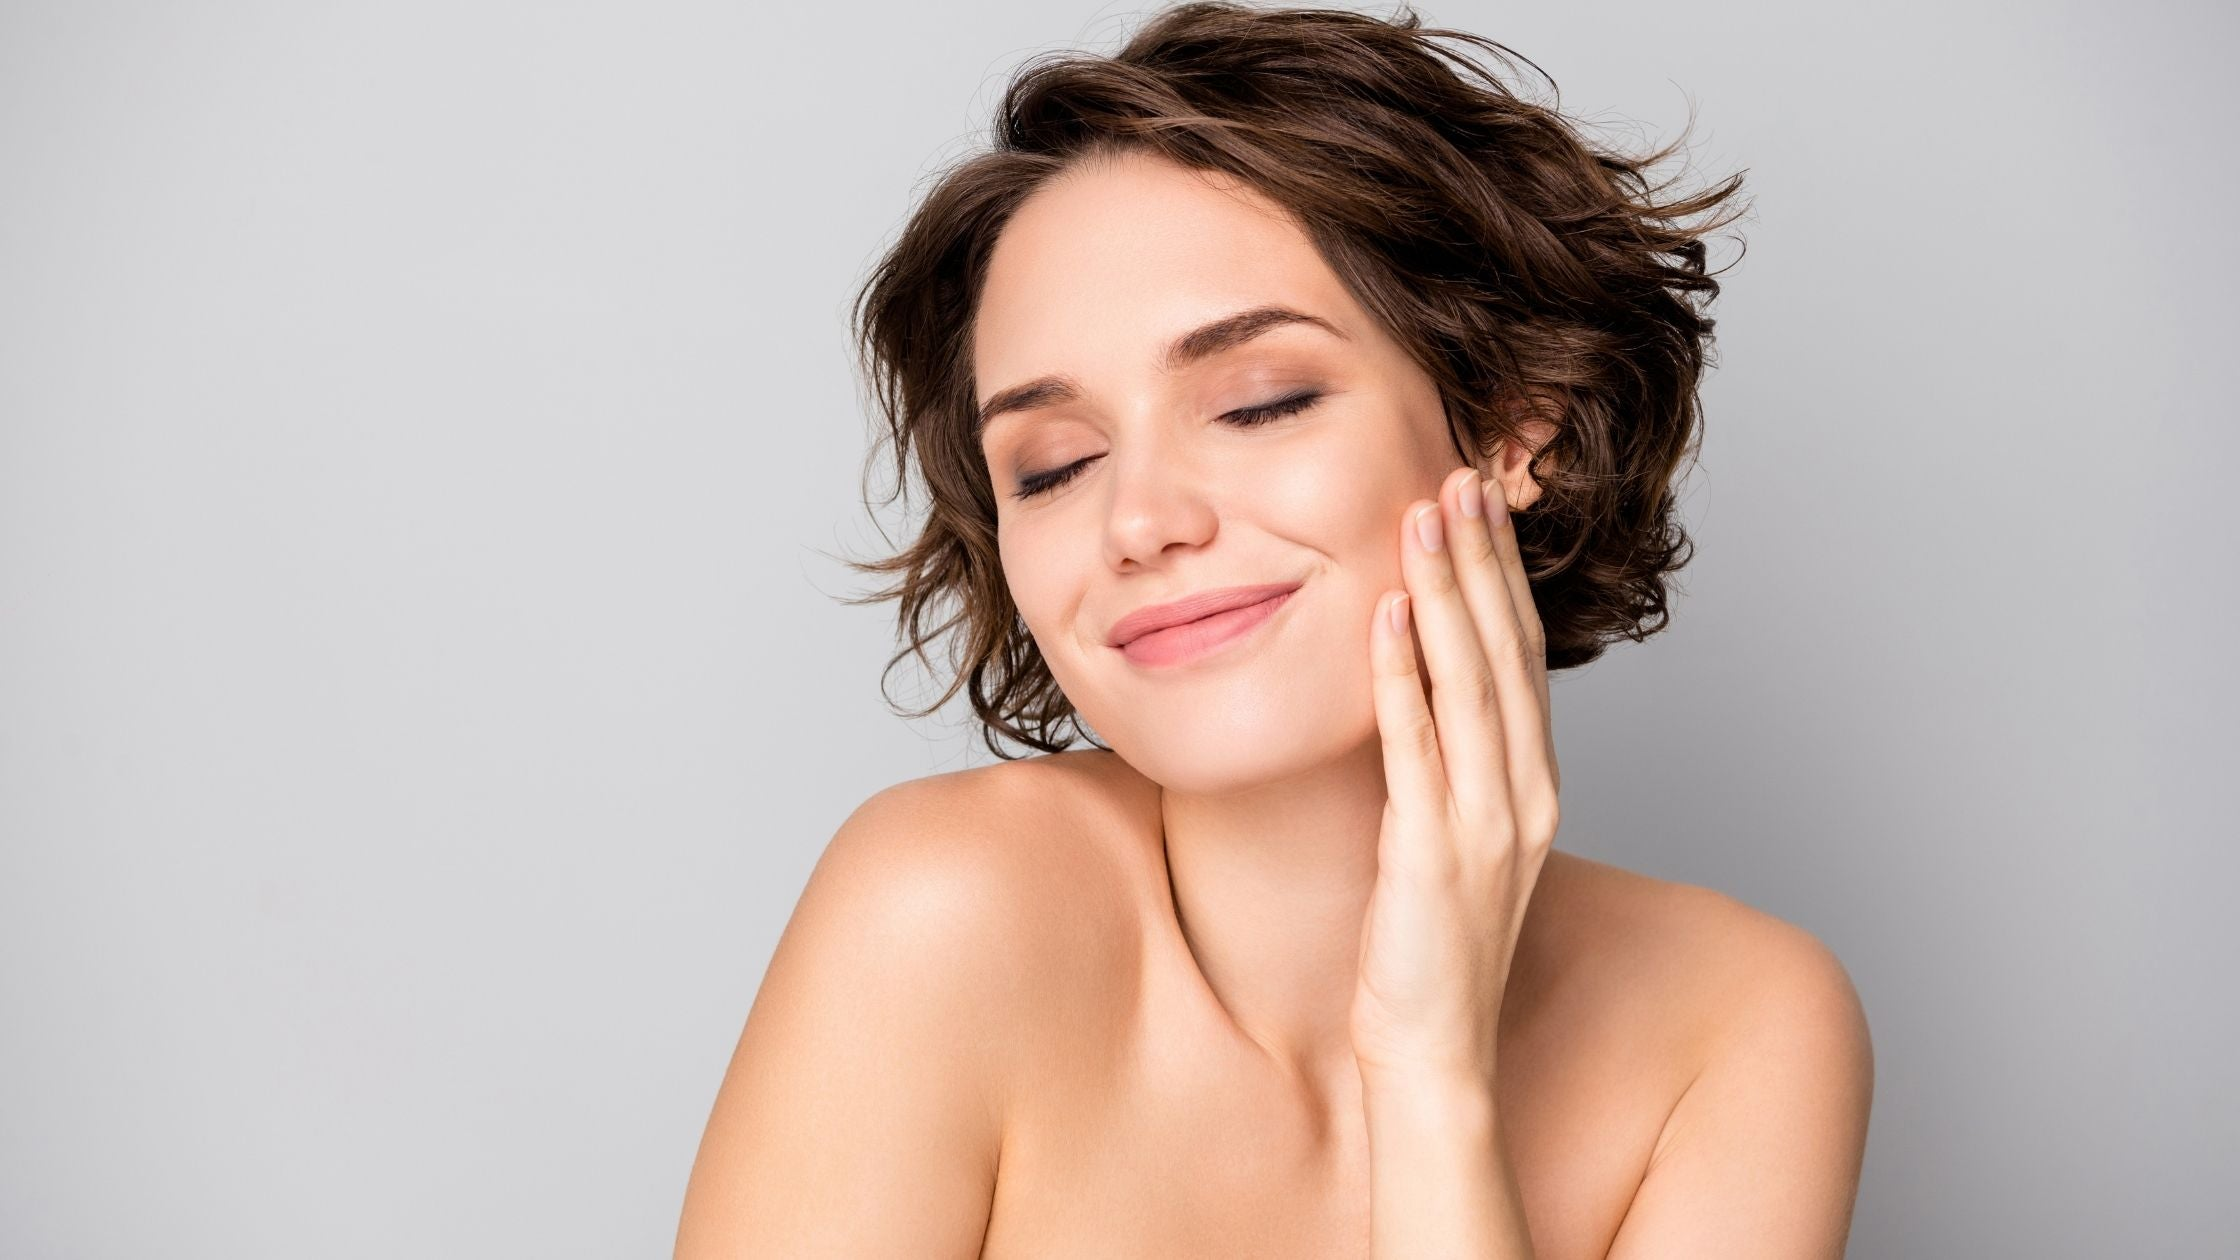 How to Get Young and Soft Skin